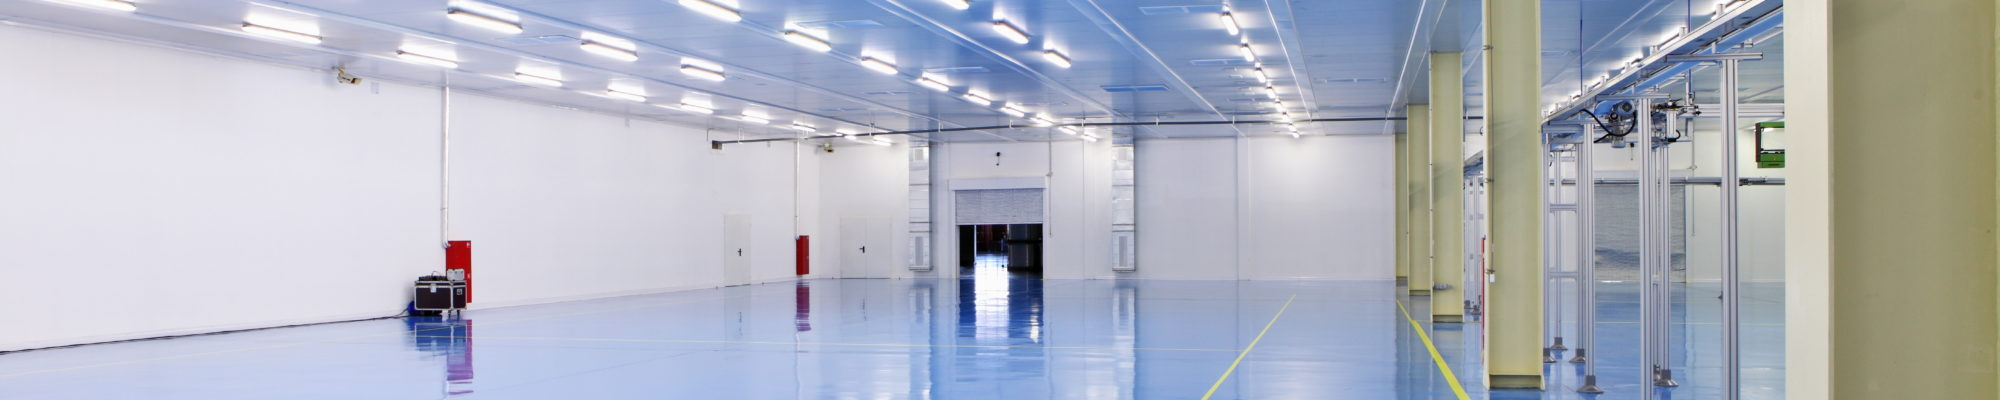 Epoxy resin floor aerospace